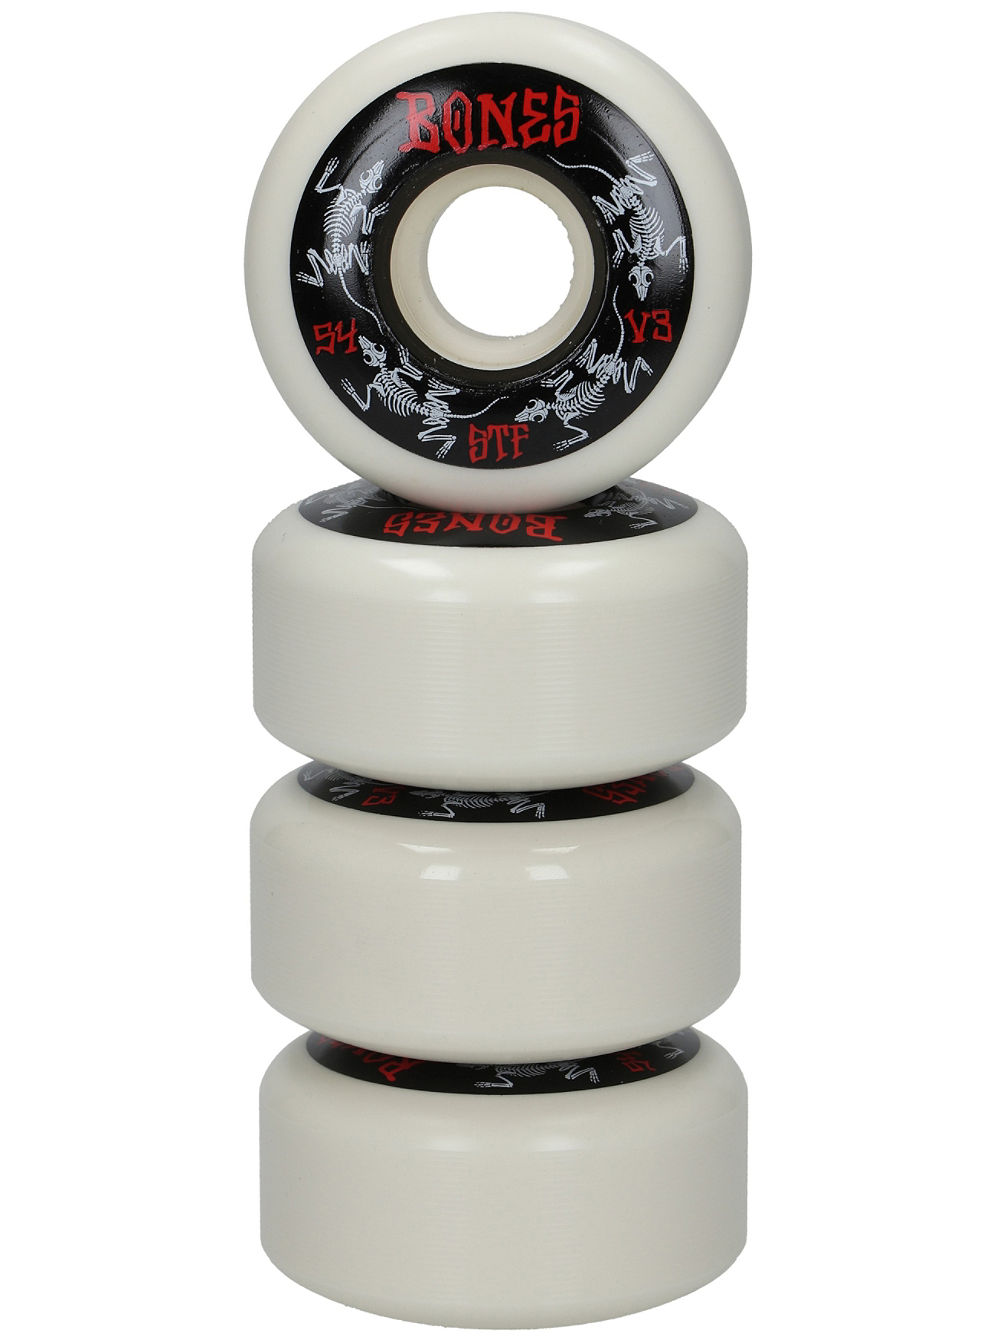 Stf V3 Series III 83B 54mm Wheels